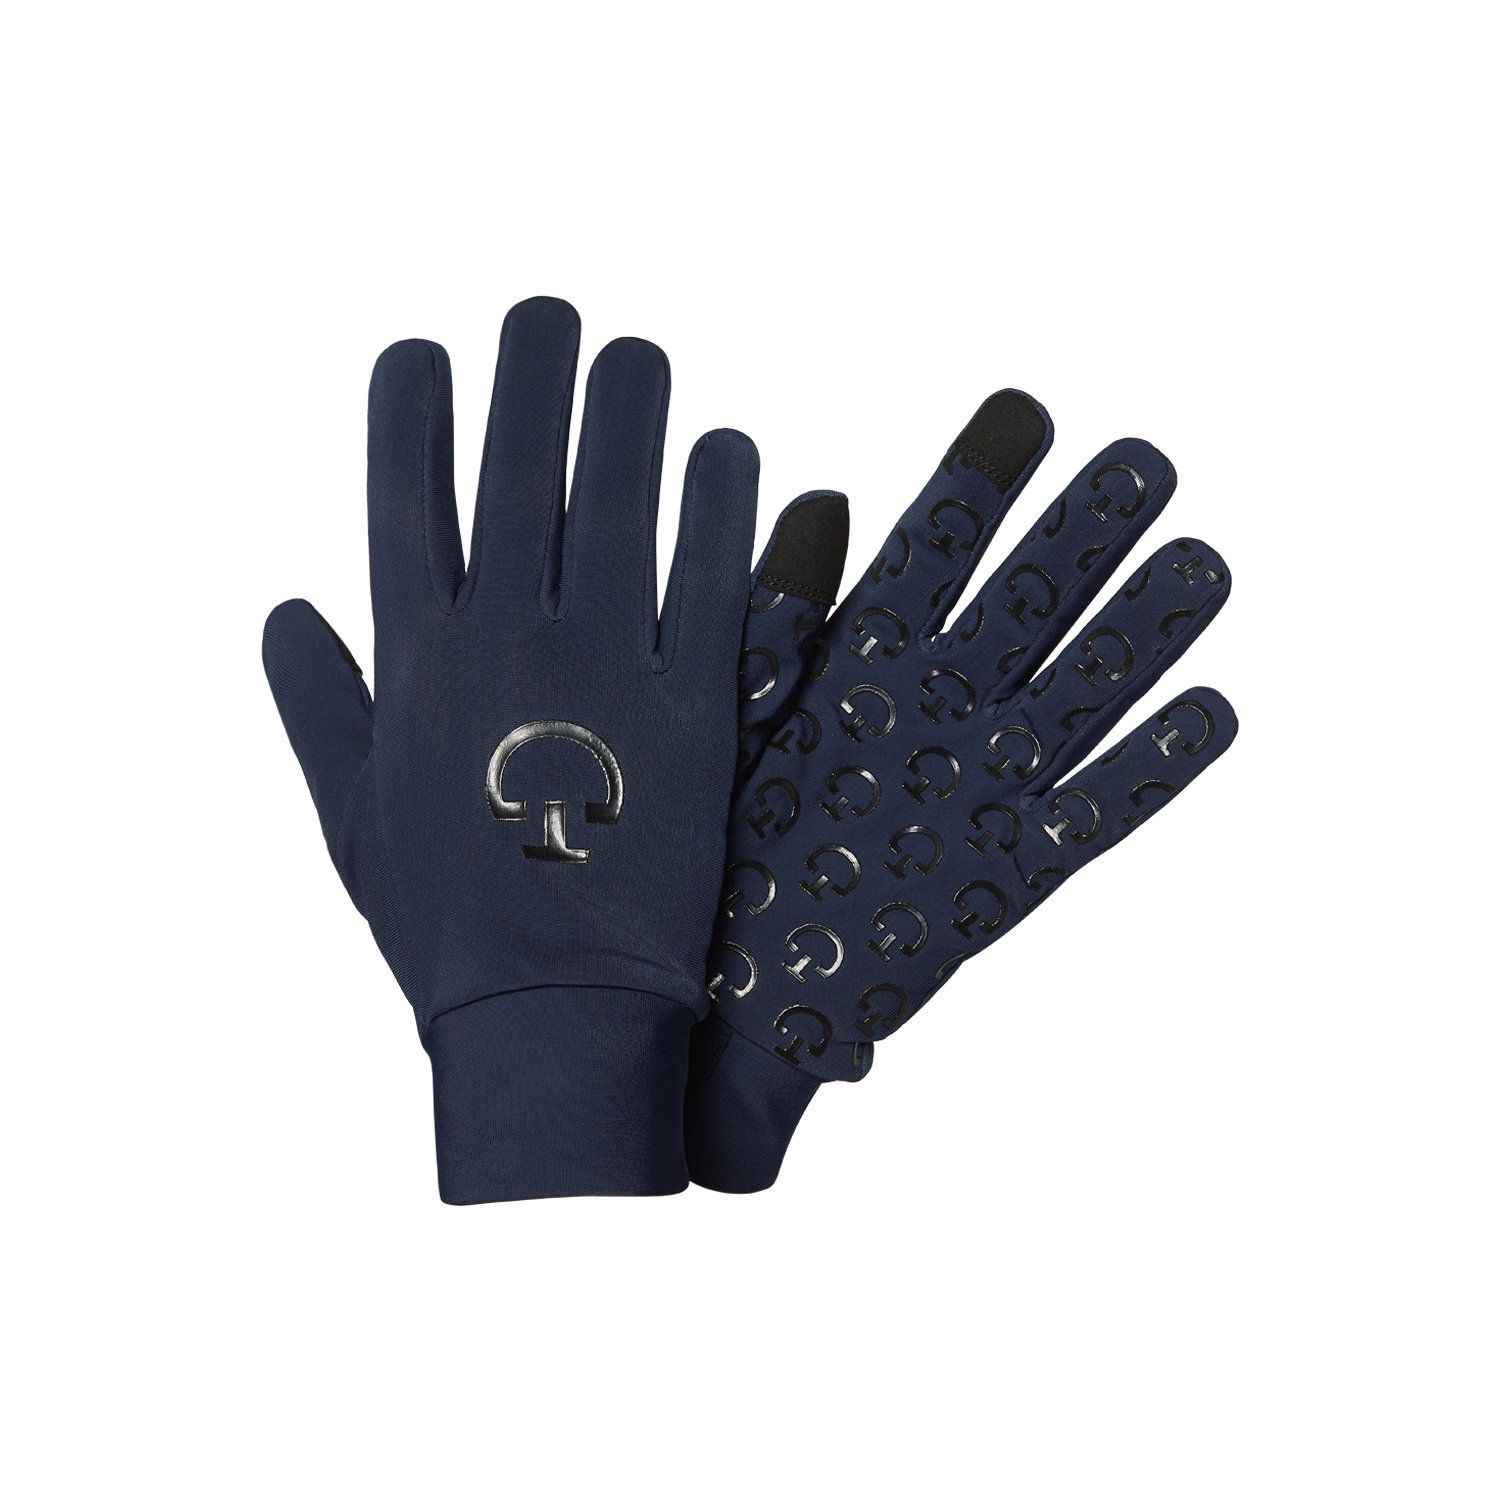 Riding winter gloves